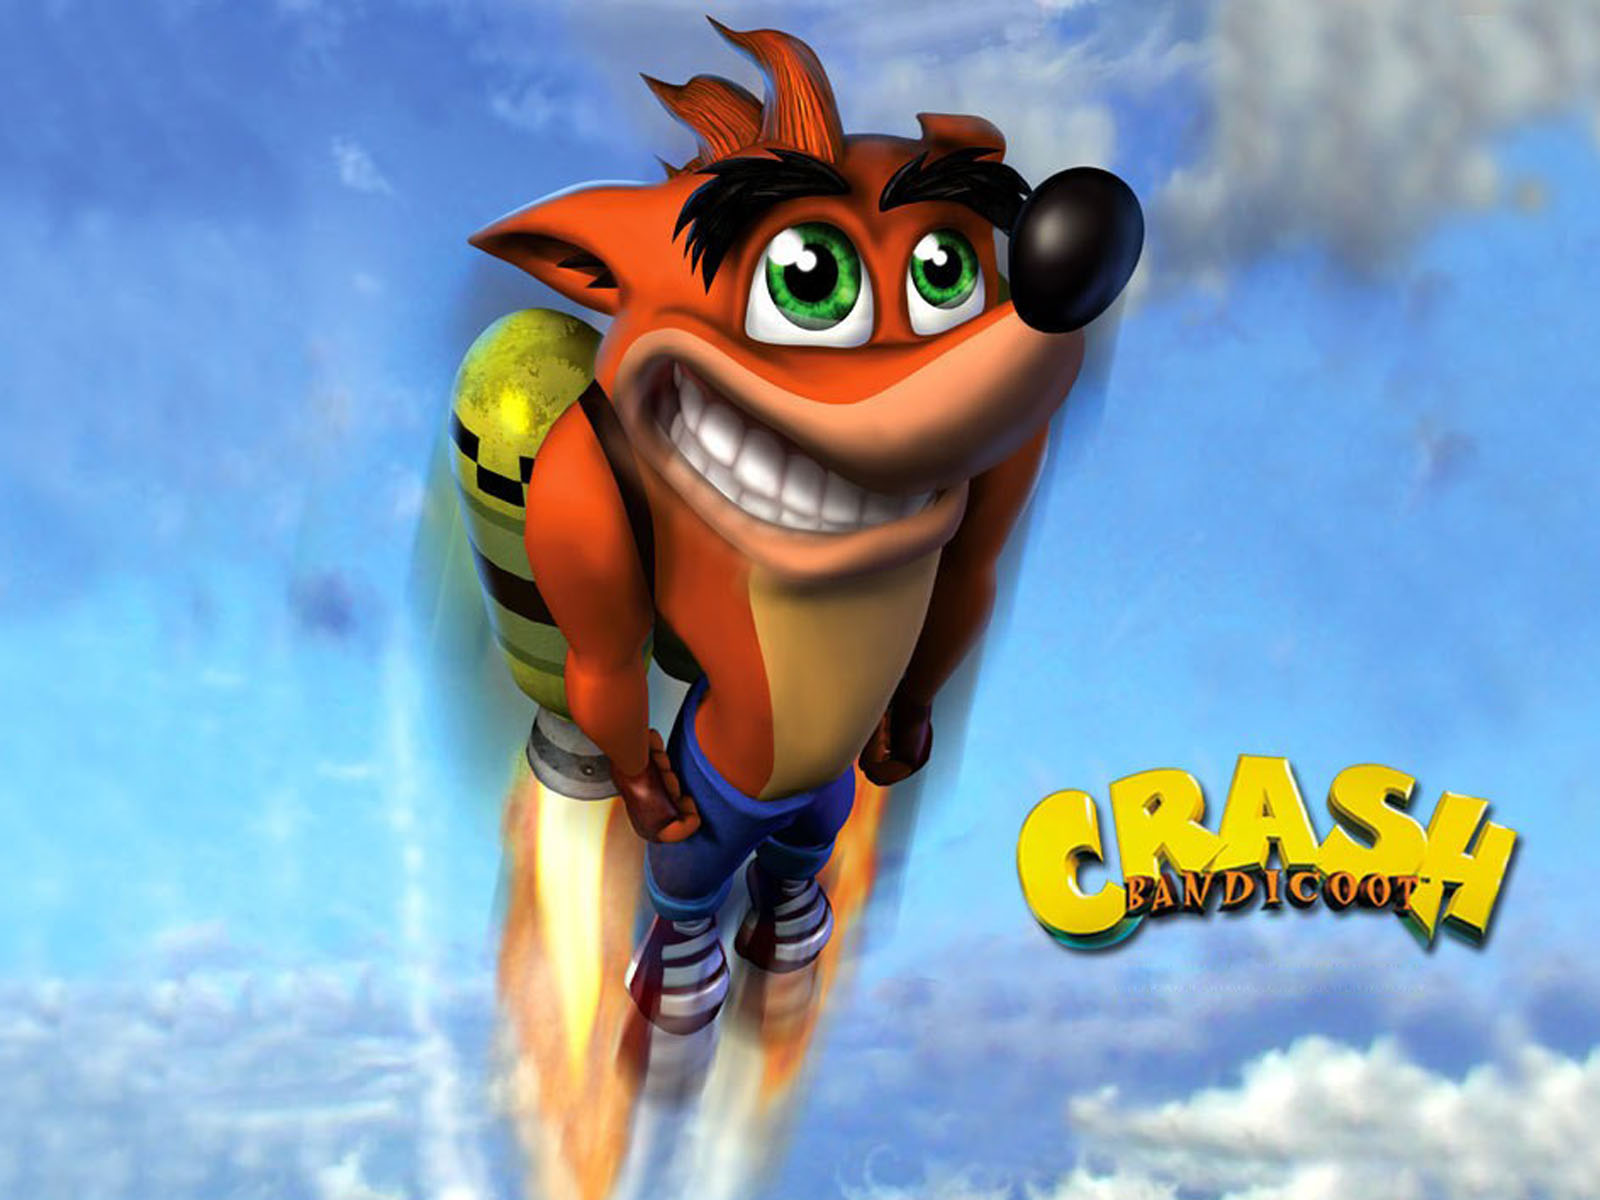 Wallpapers Crash Bandicoot HD Wallpapers Download Free Images Wallpaper [1000image.com]